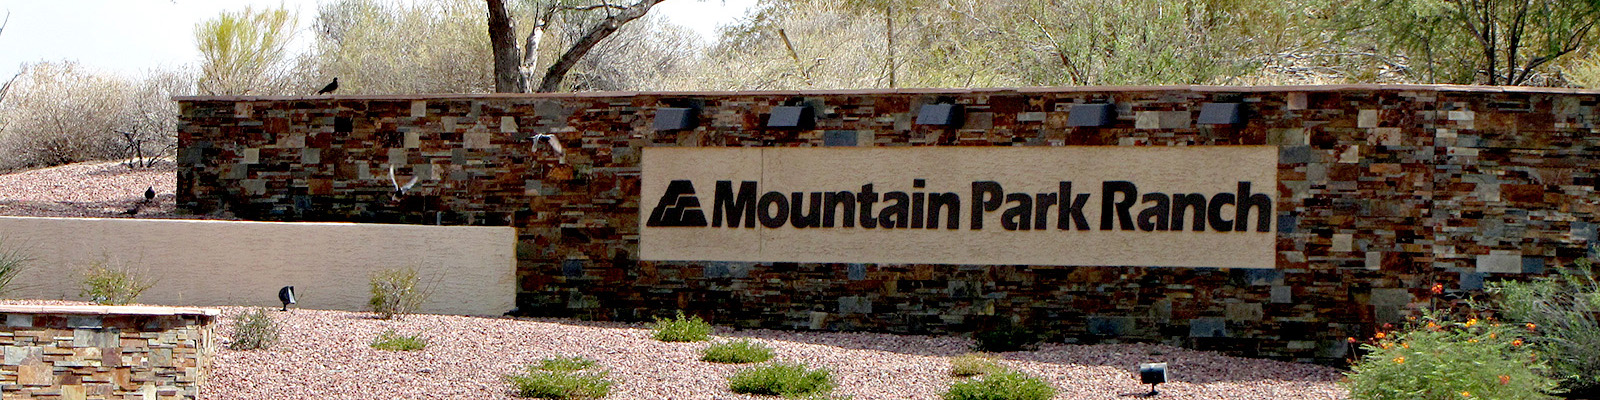 Mountain Park Ranch HOA Fees Arizona